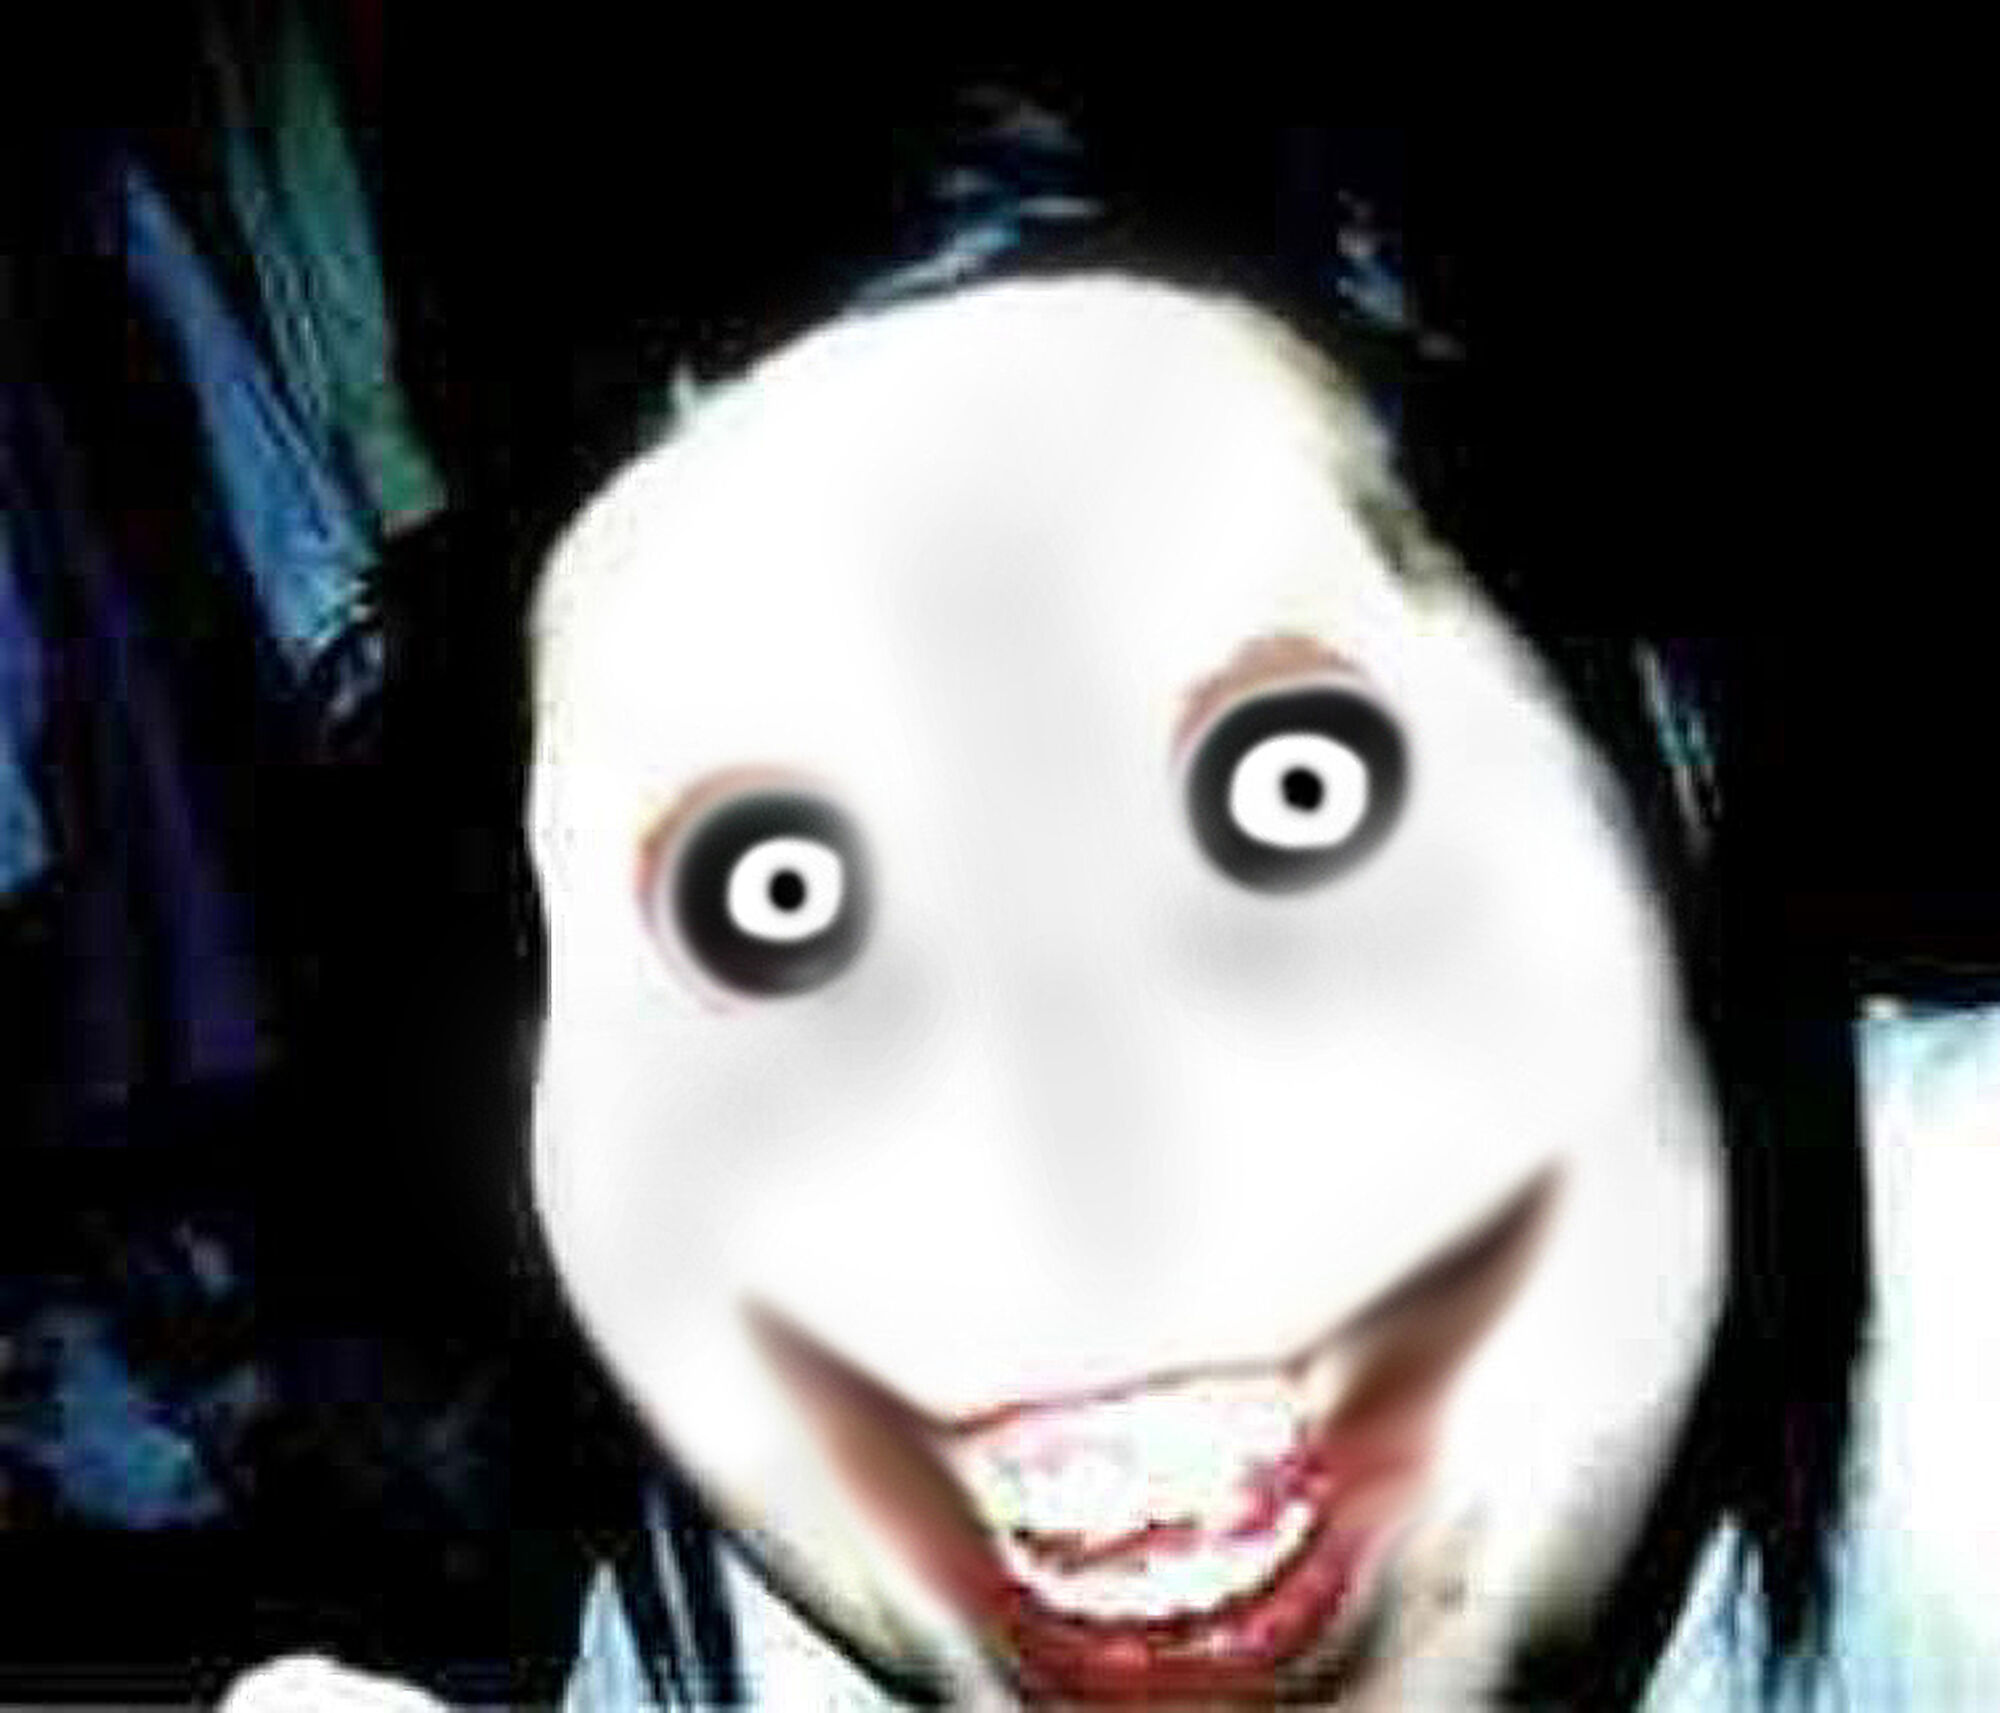 Who is Jeff the Killer?